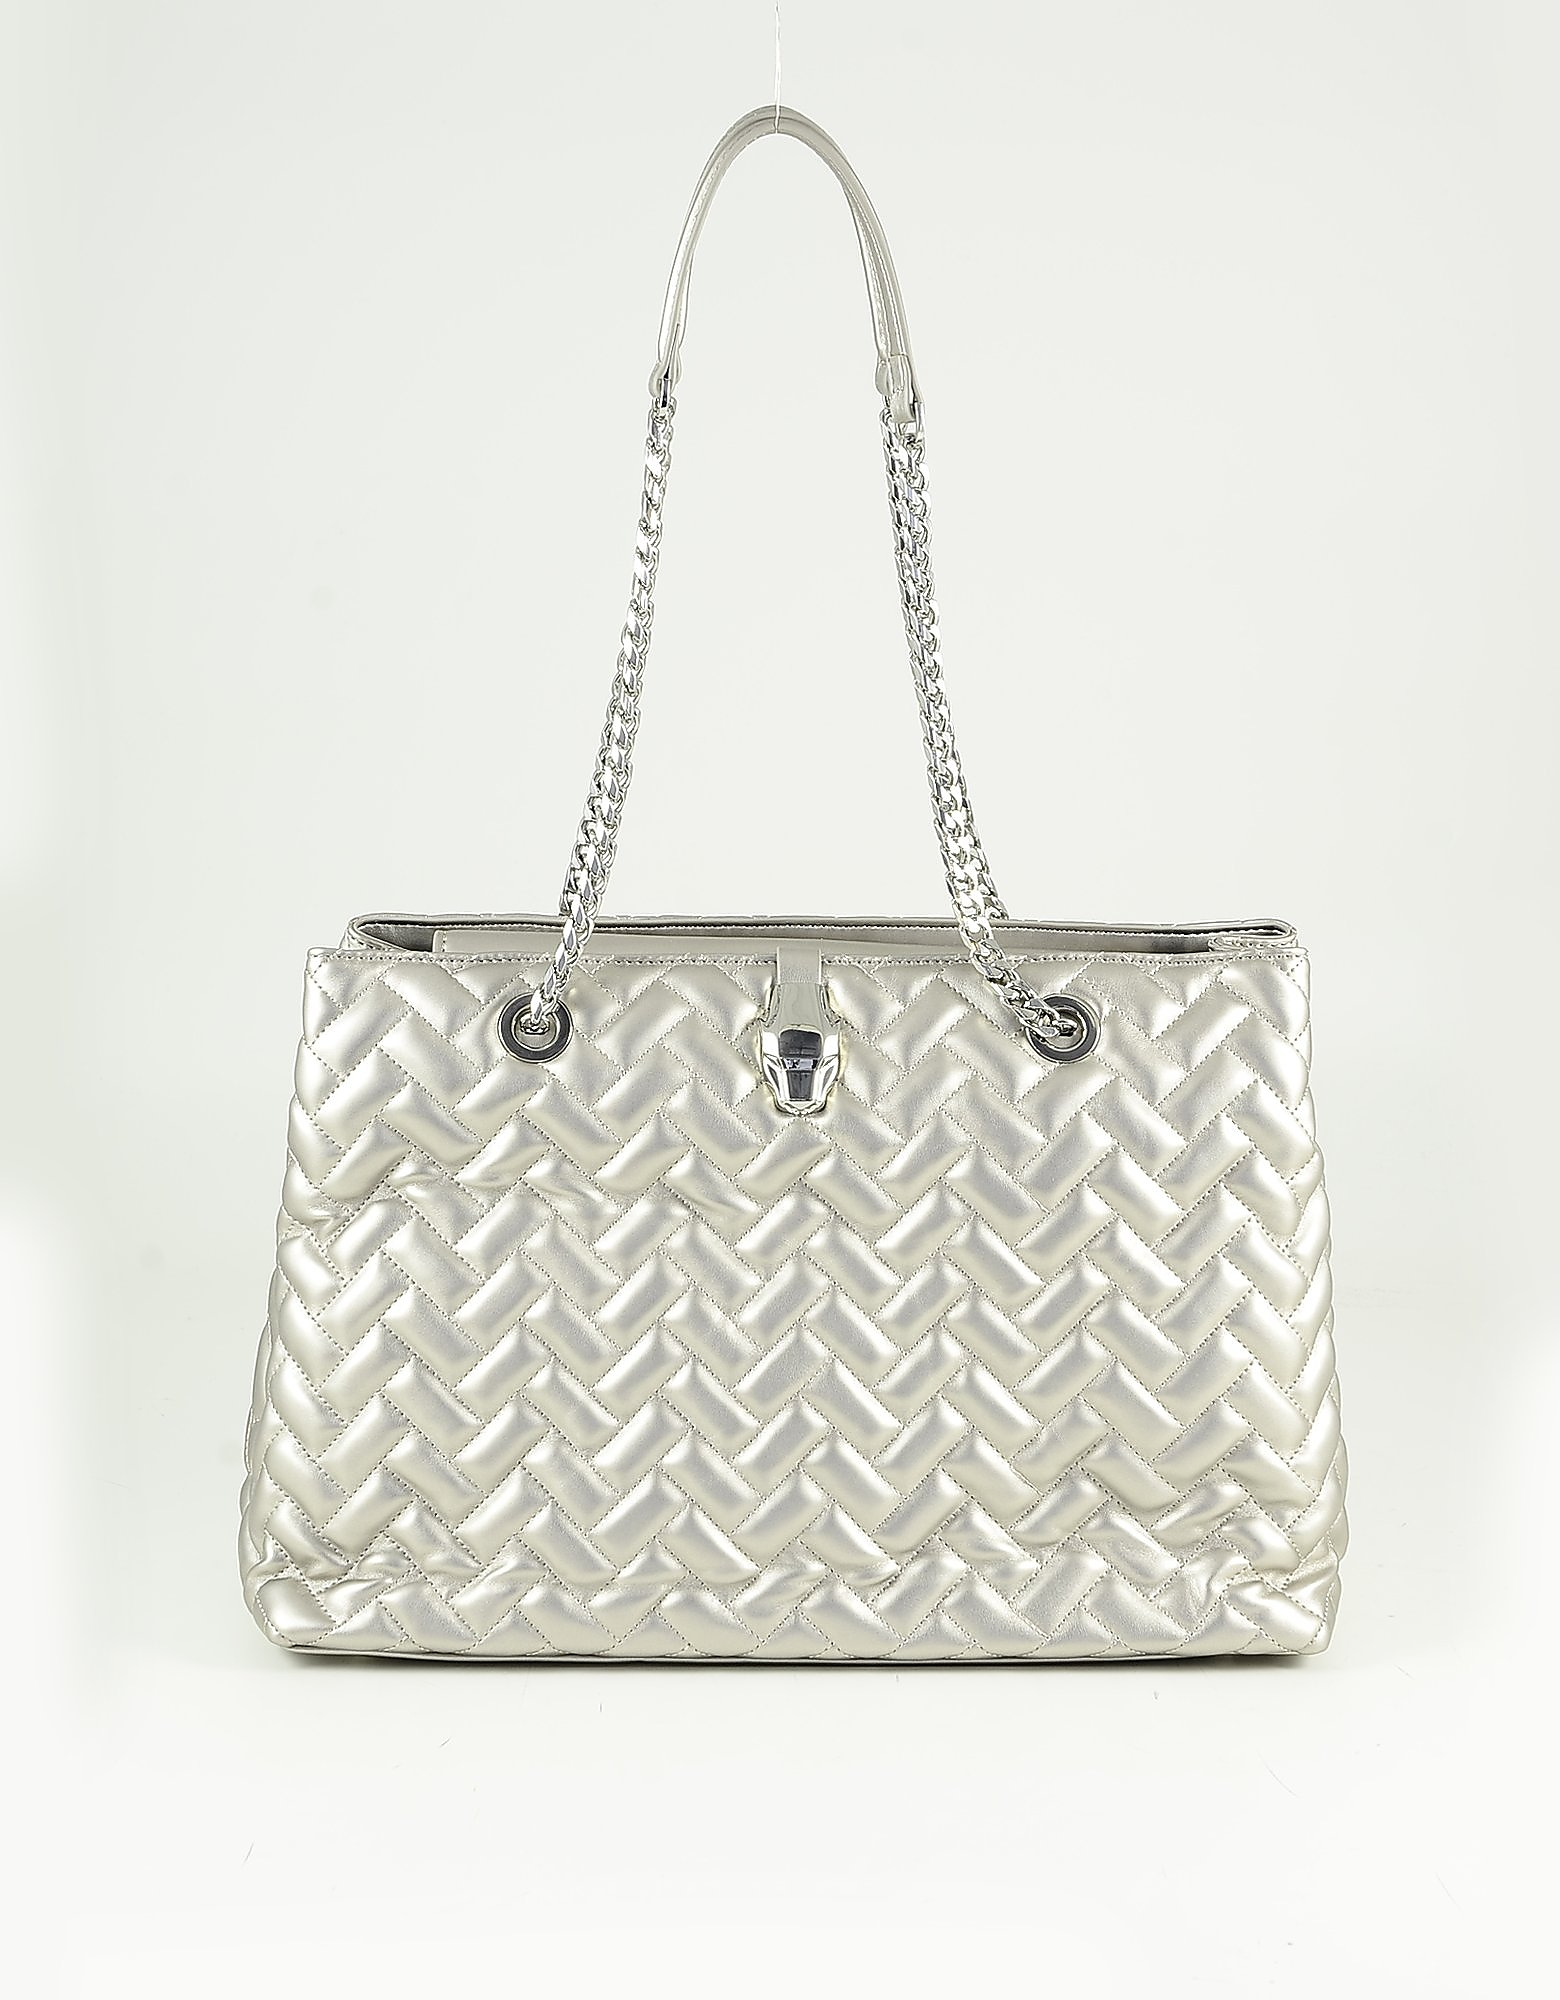 Class Roberto Cavalli Silver Quilted Eco Leather Tote Bag